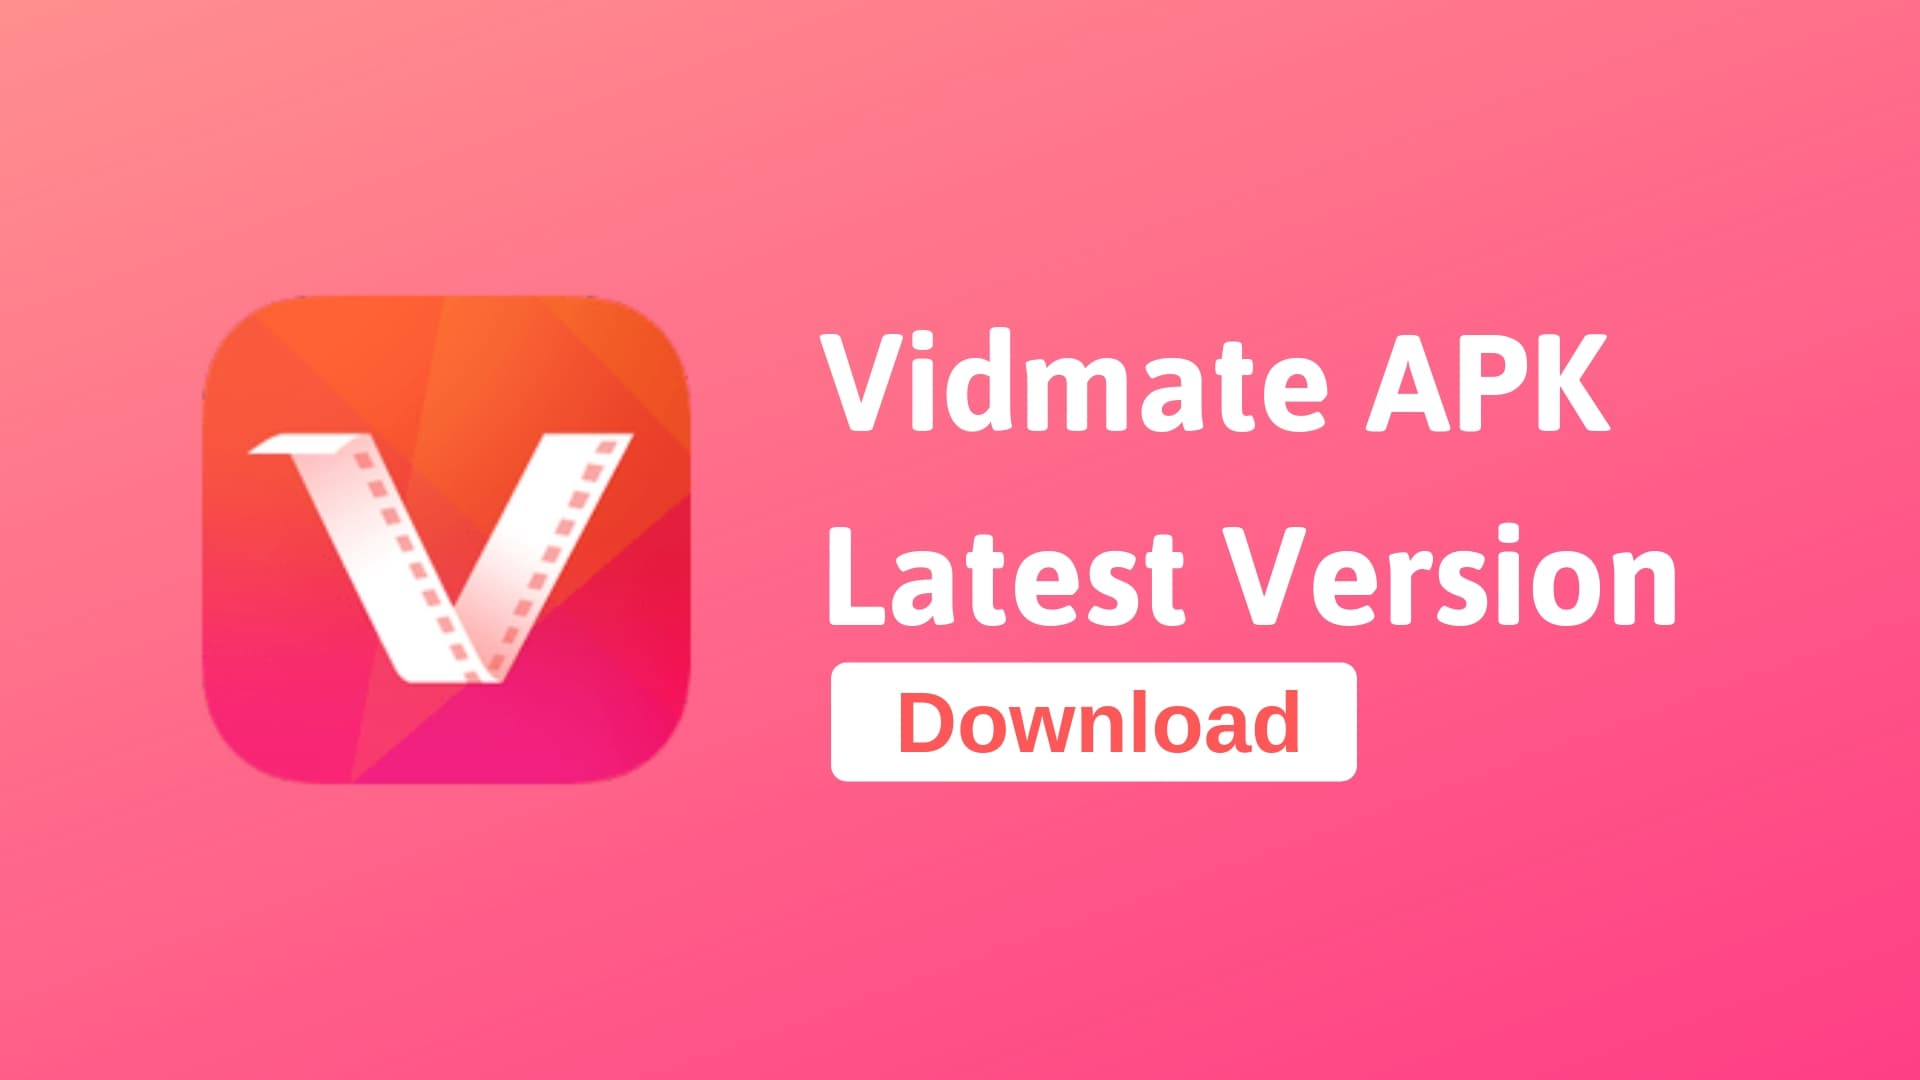 What is Vidmate and How to install it?